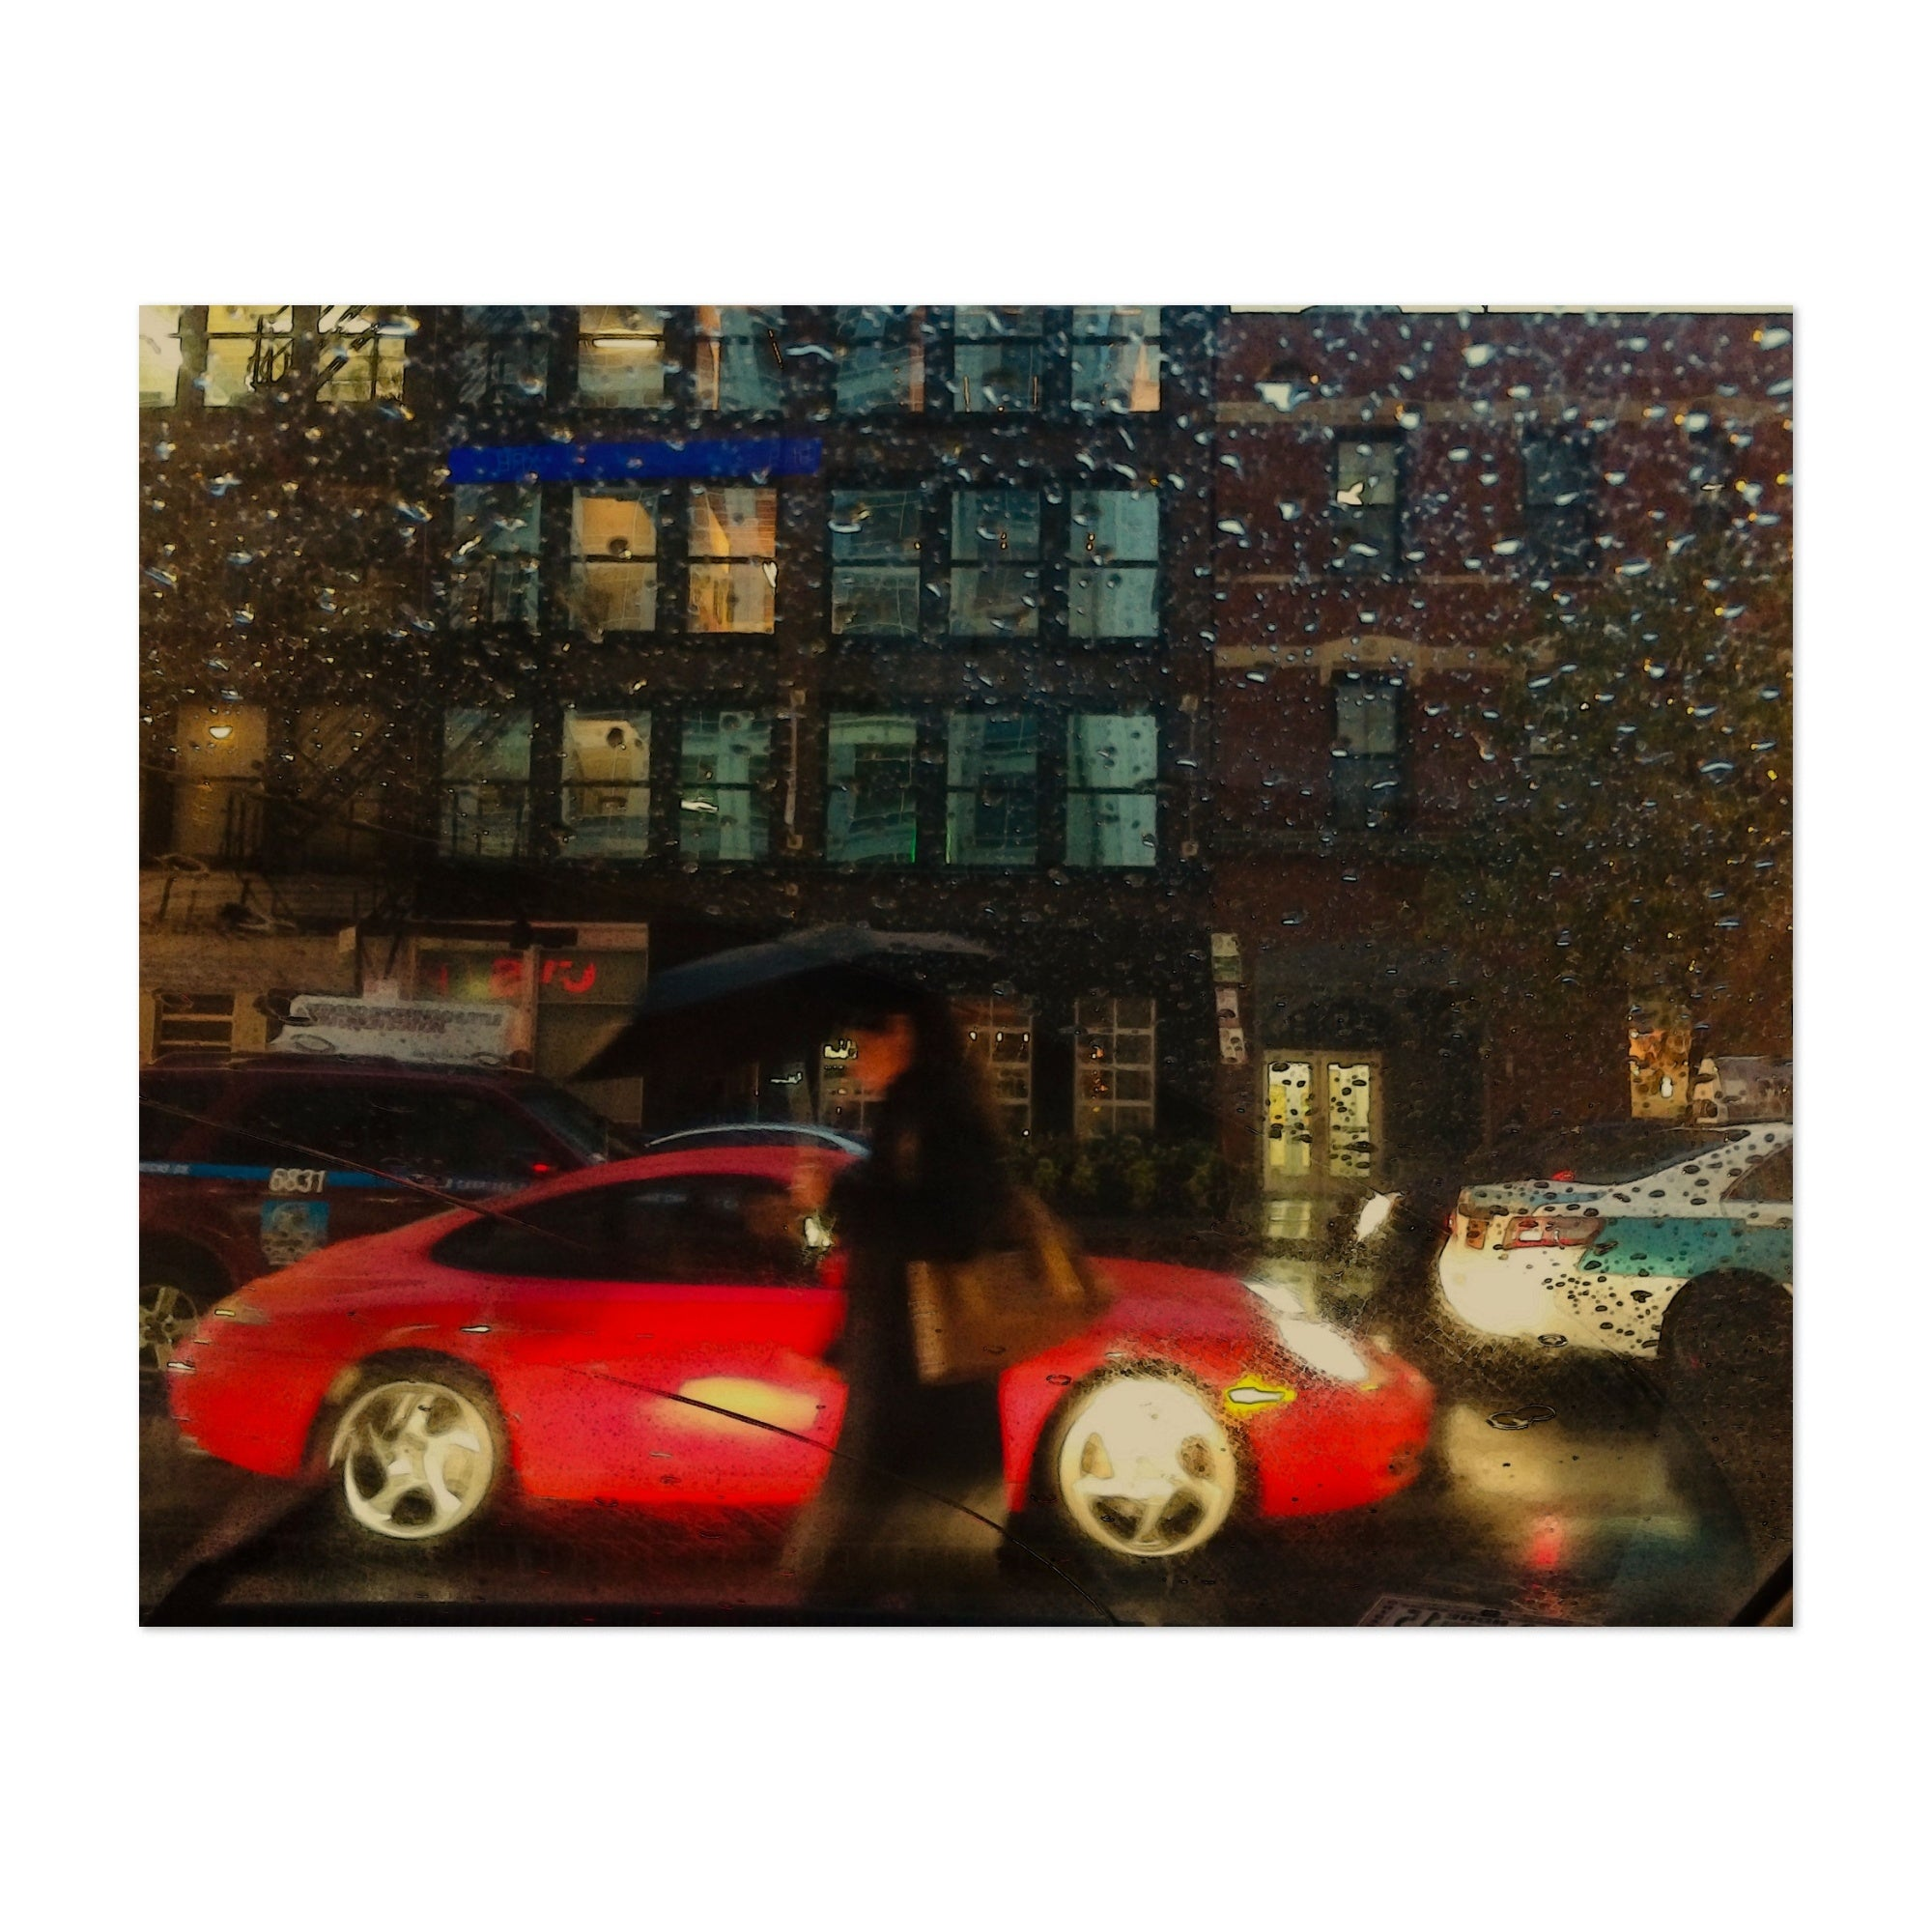 Chicago Illinois Car Cars Rain Red Unframed Wall Art Print Poster Overstock 31234391